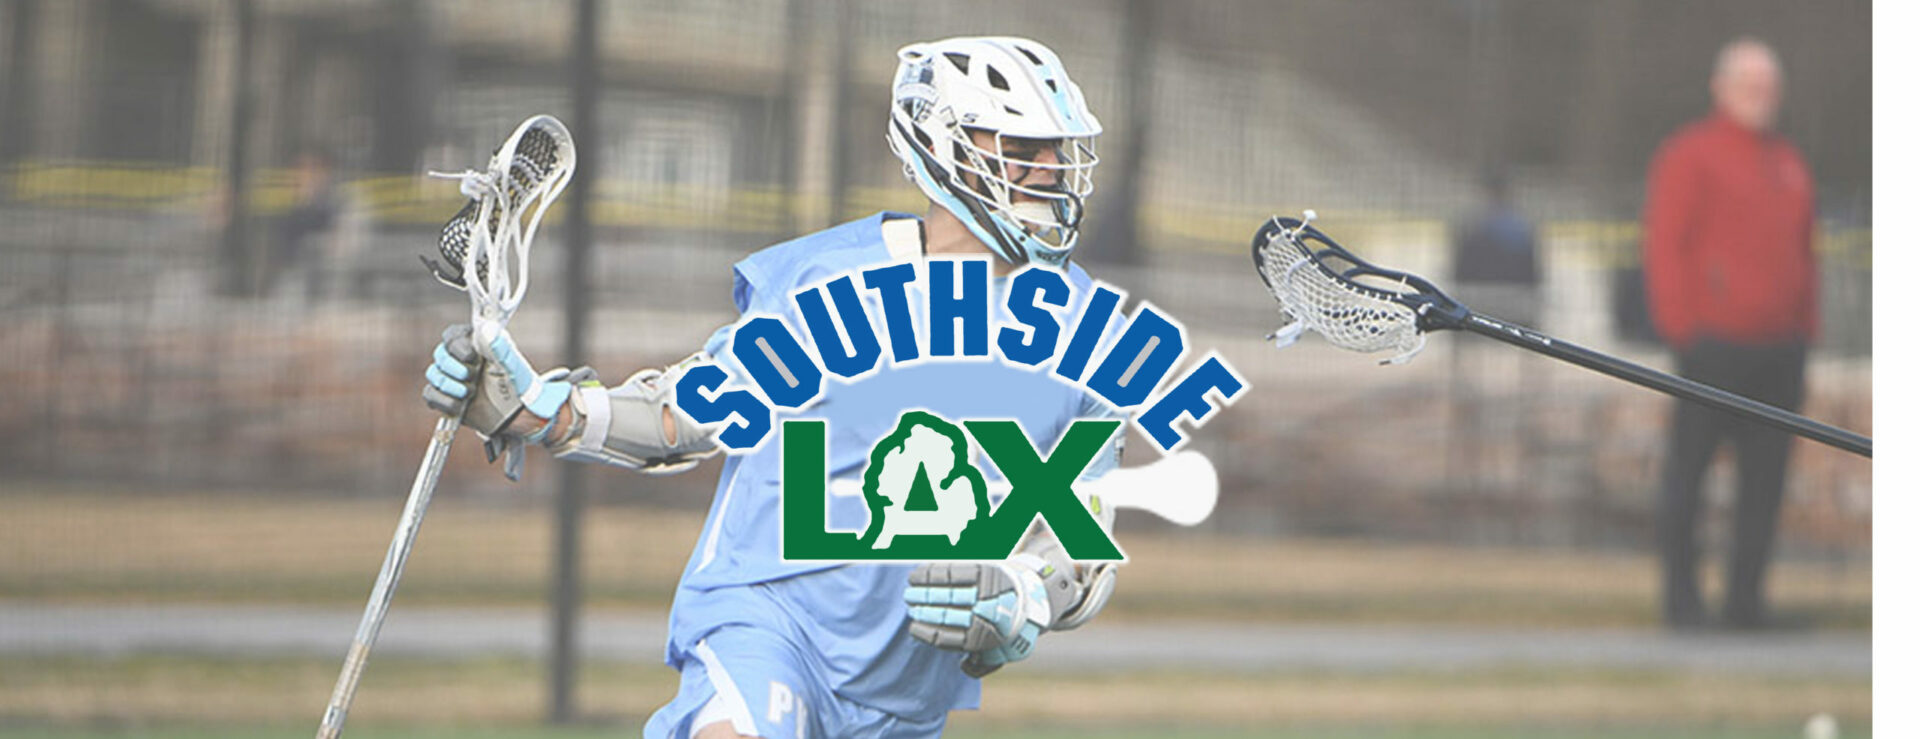 Improved Mona Shores lacrosse team blasts Grand Rapids South Christian 17-3, improves to 2-0 on the season